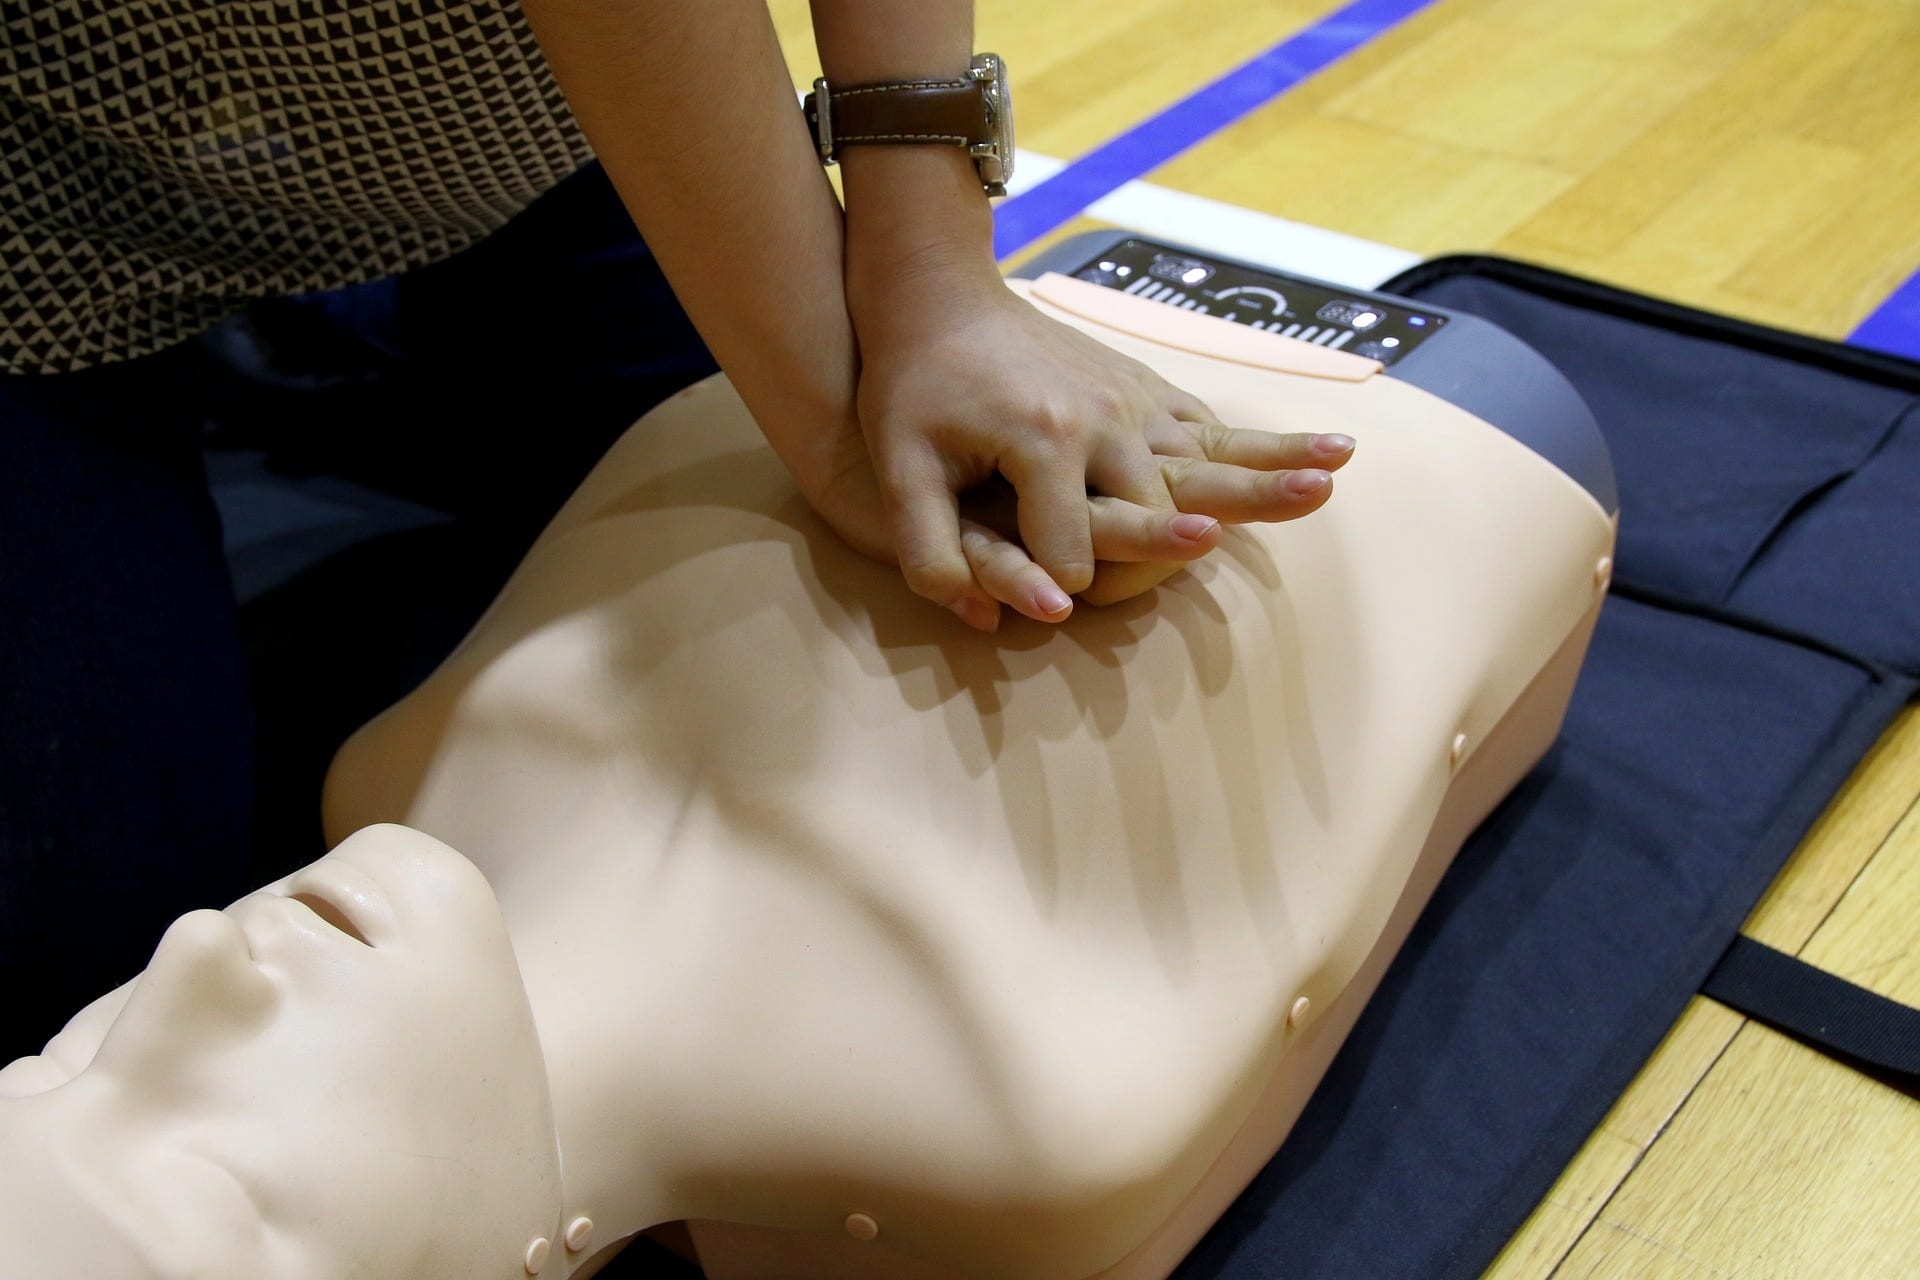 CPR on a mannequin